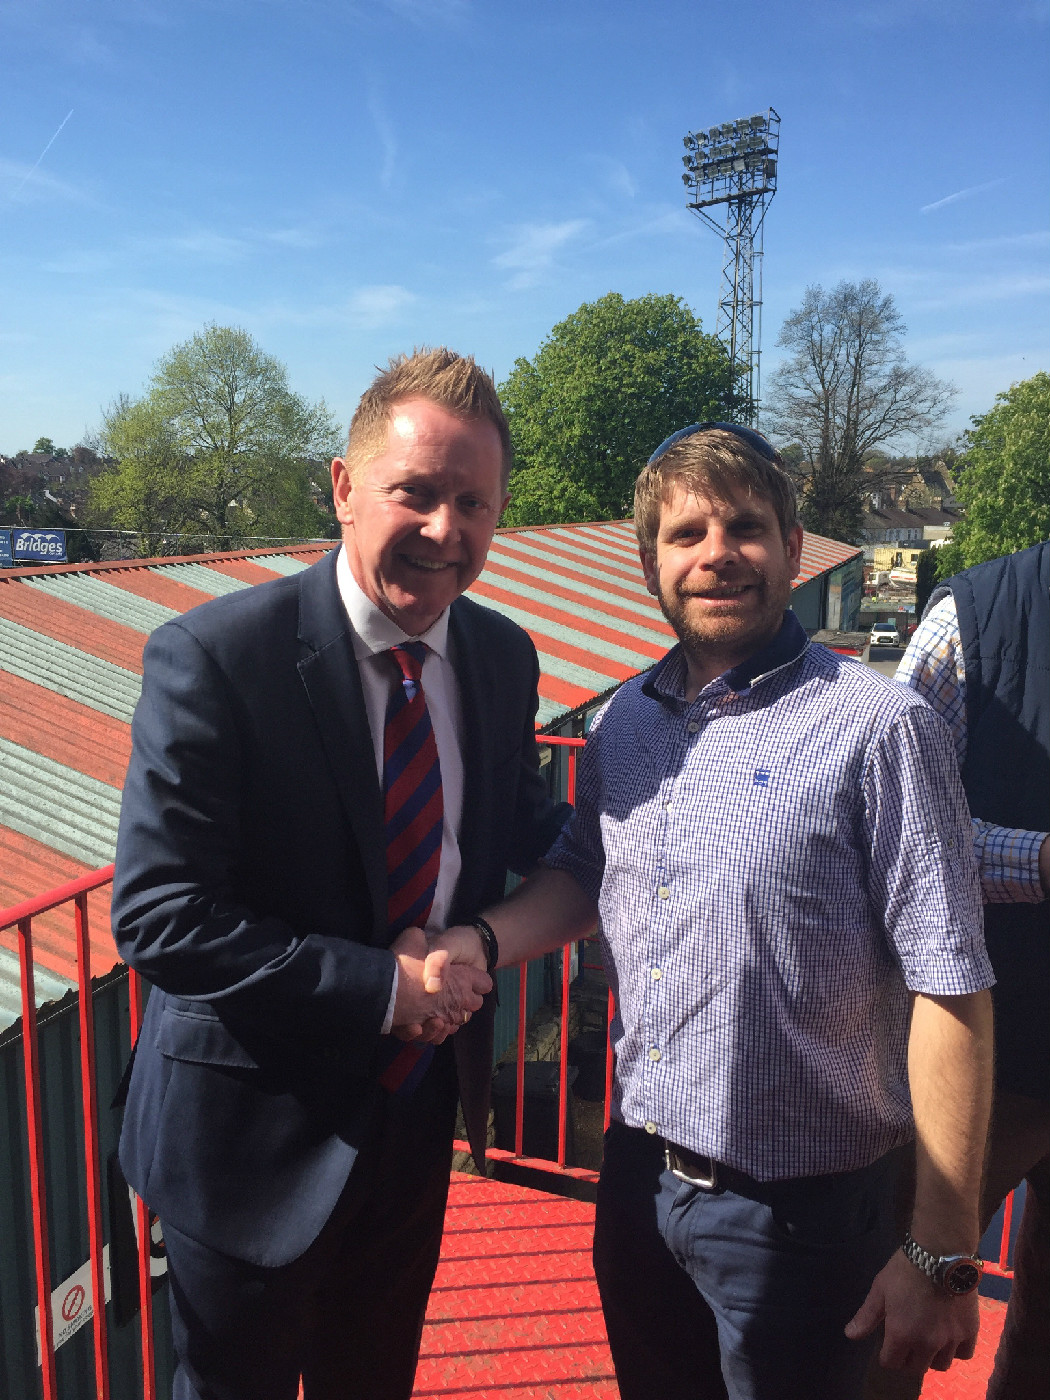 Reade Signs proud to be at Aldershot FC's new manager press conference